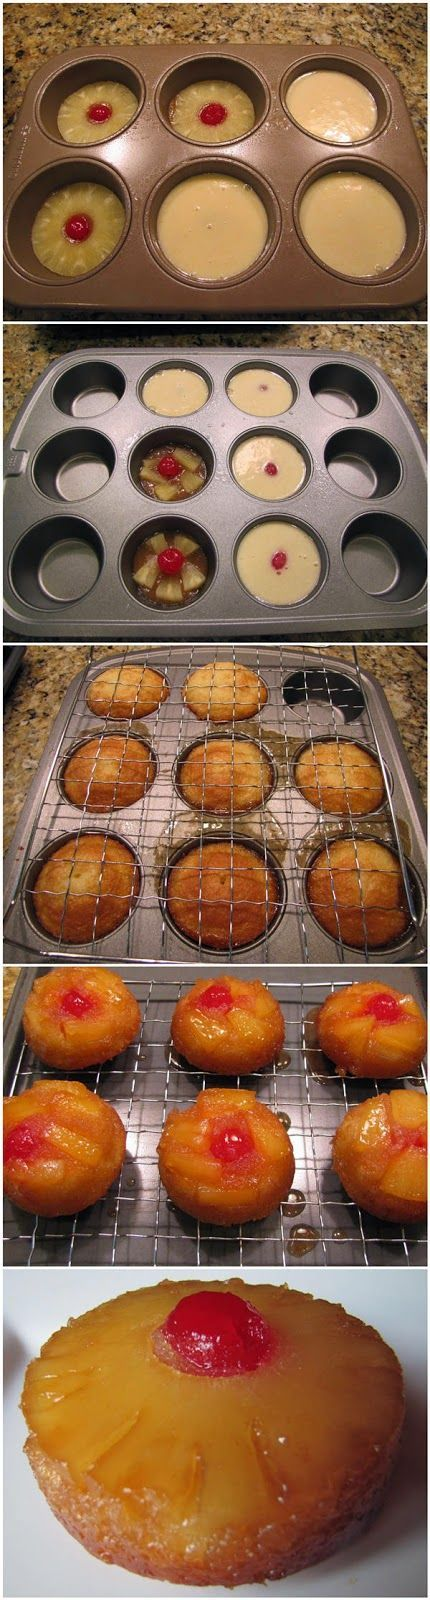 Mini Pineapple Upside Down Cakes ~ toprecipeblog